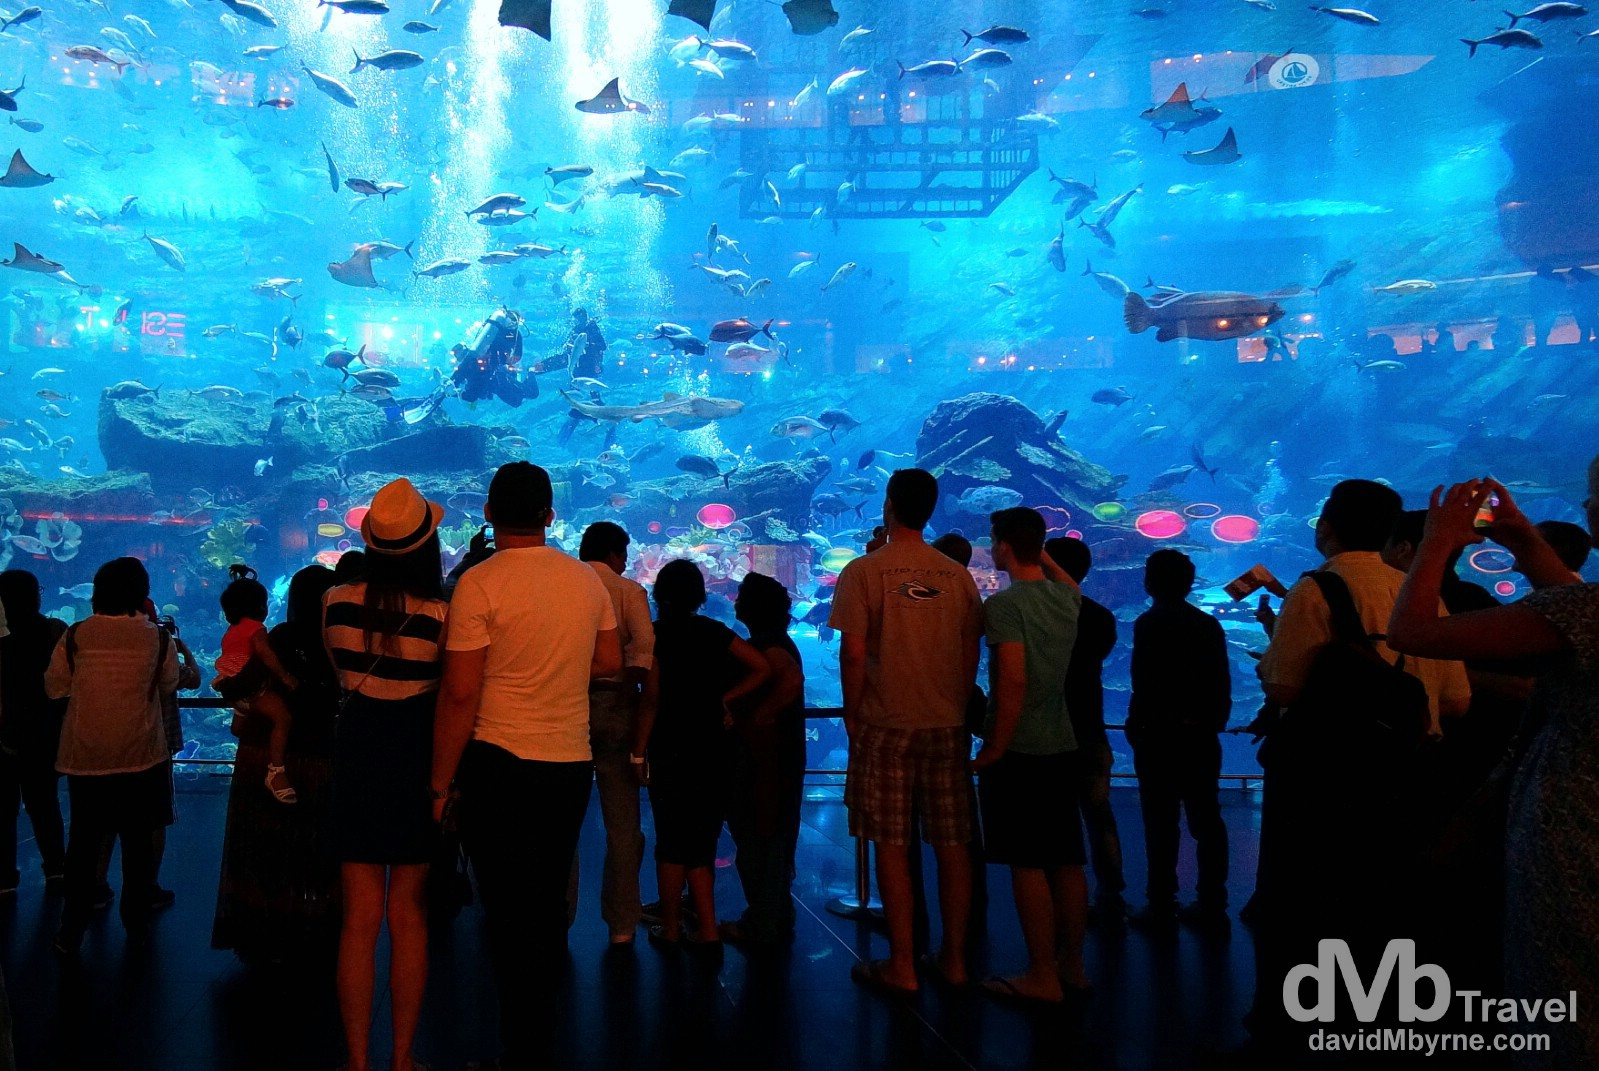 The viewing window of Dubai Aquarium in The Dubai Mall, Dubai, UAE. April 14th, 2014.